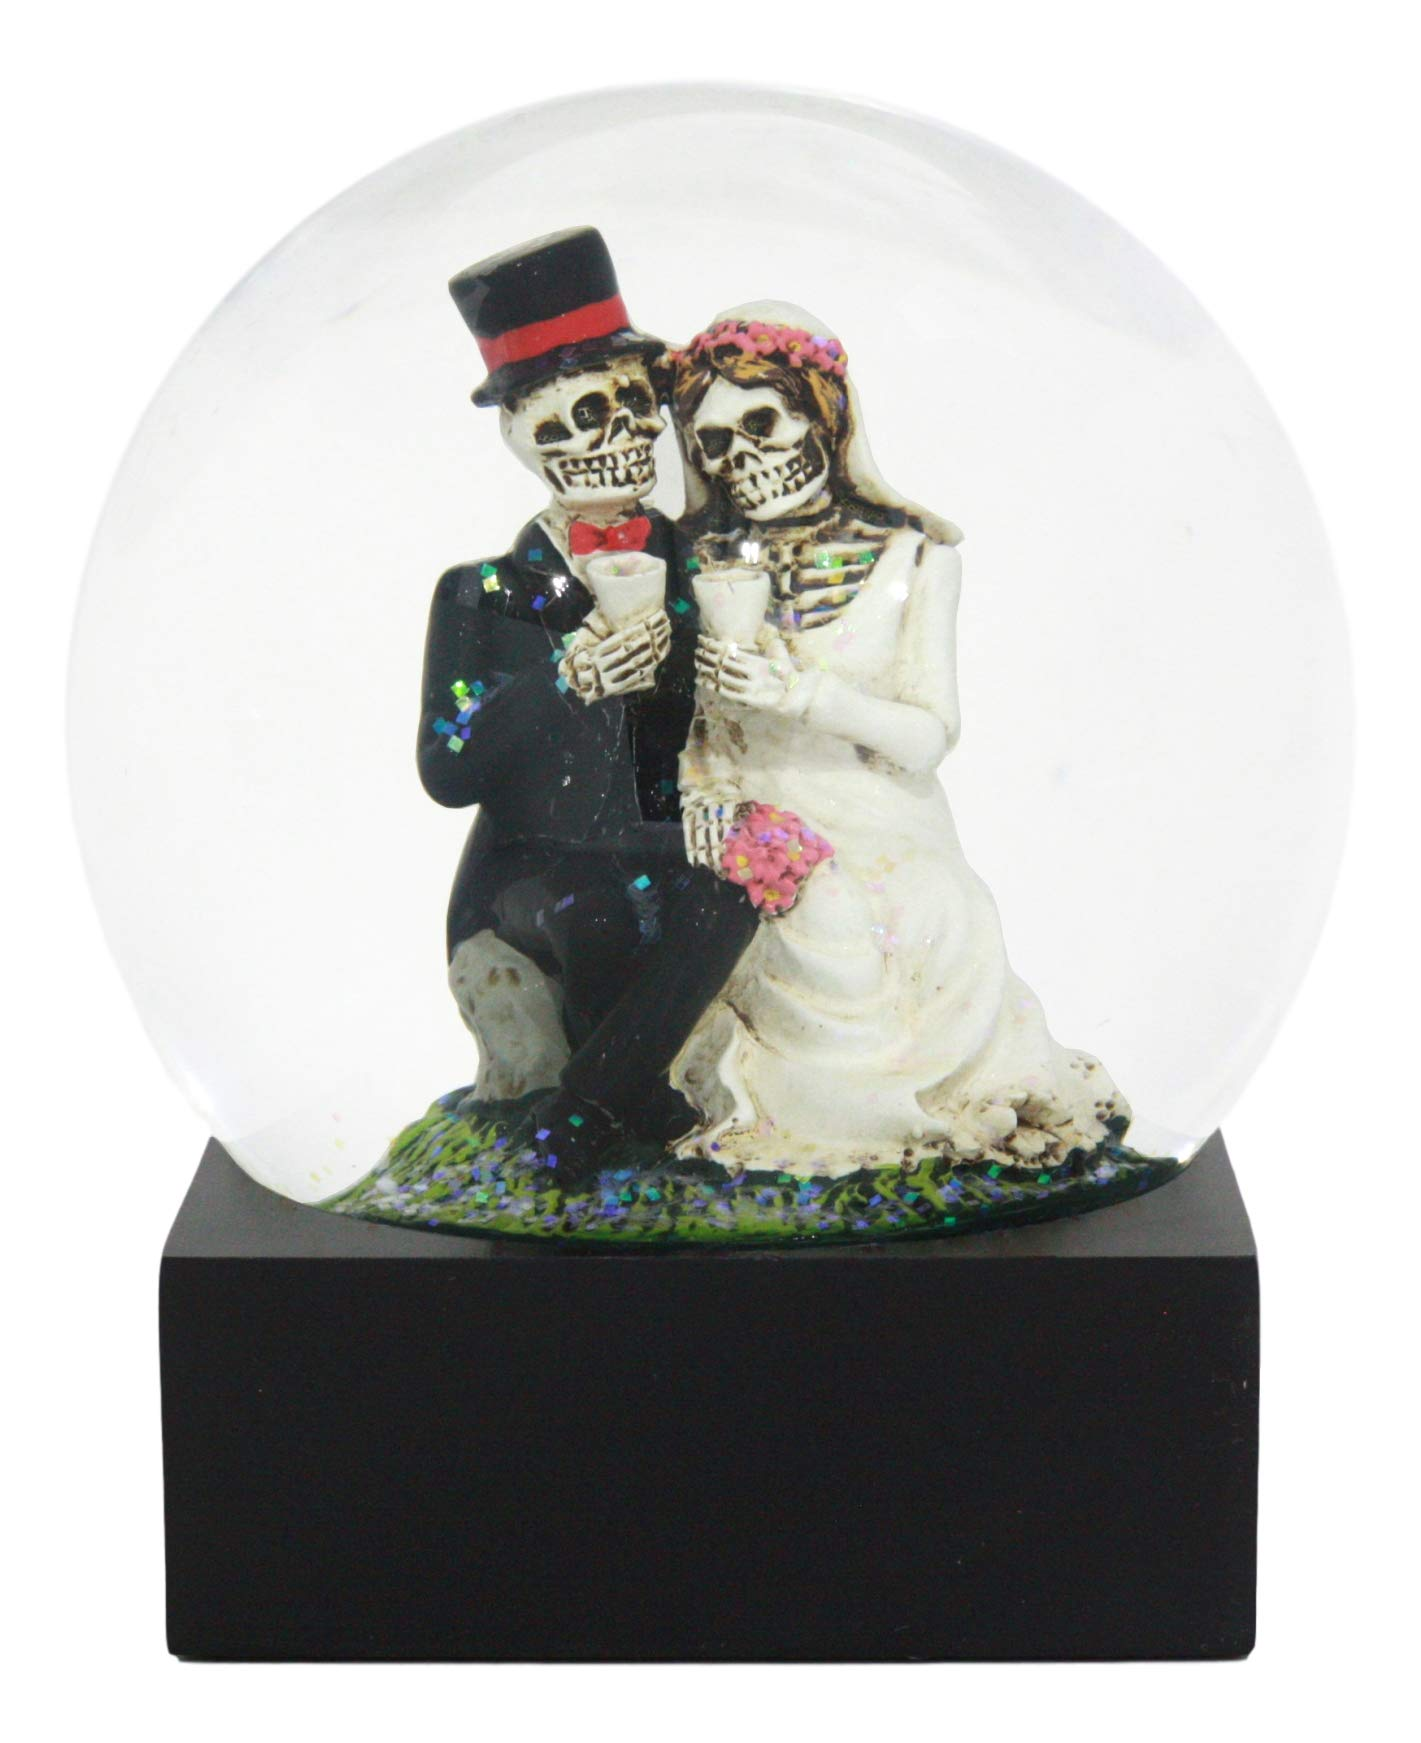 Ebros Love Never Dies Wedding Bride and Groom Skeleton Glitter Water Globe (100mm) As Gothic Anniversary Or Day of The Dead Decor Collectibles Dias De Muertos Tradition Decorative Figurine